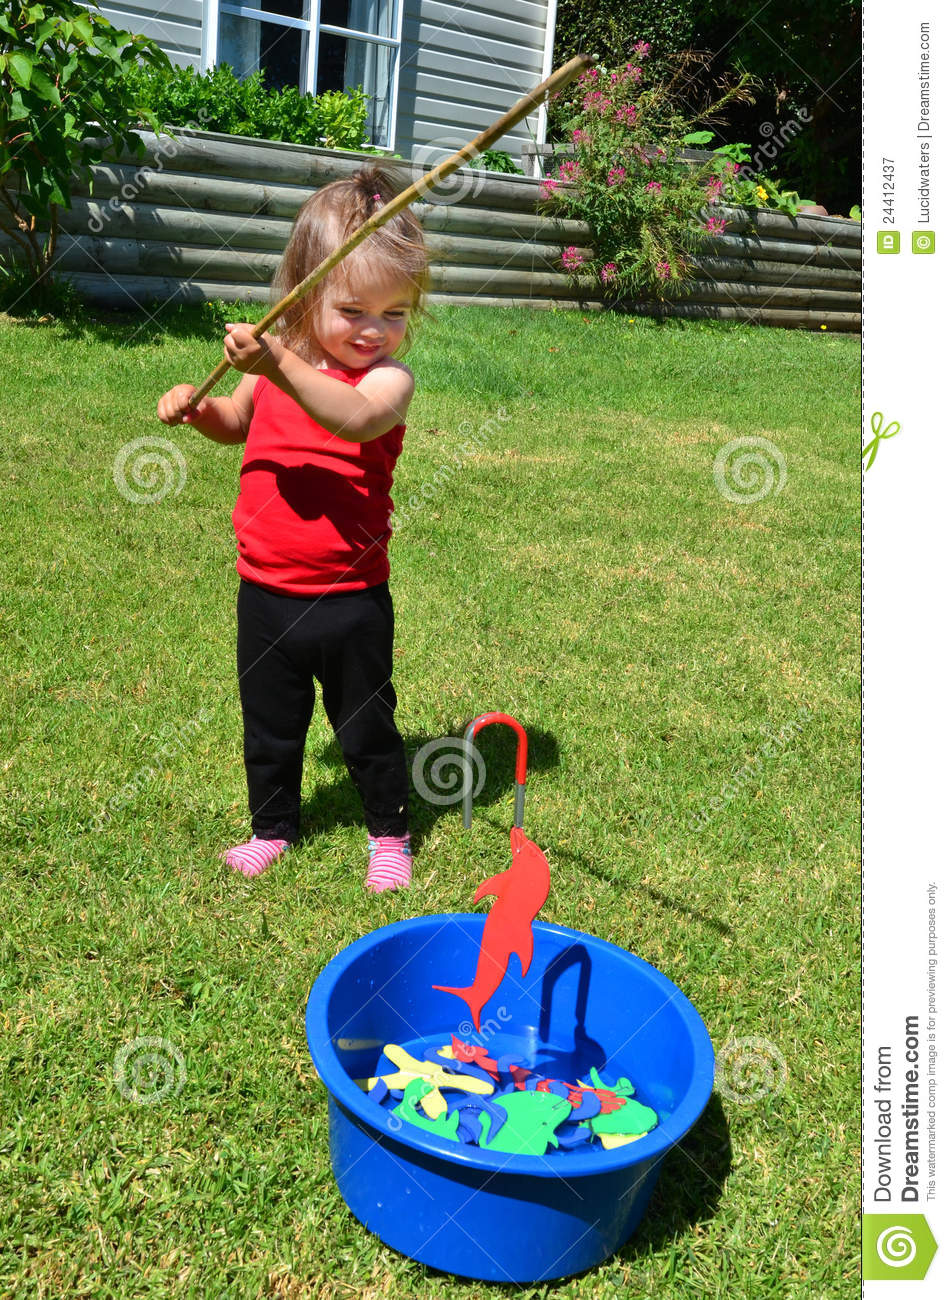 Fishing game royalty free stock photography image 24412437 for Fishing games for girls